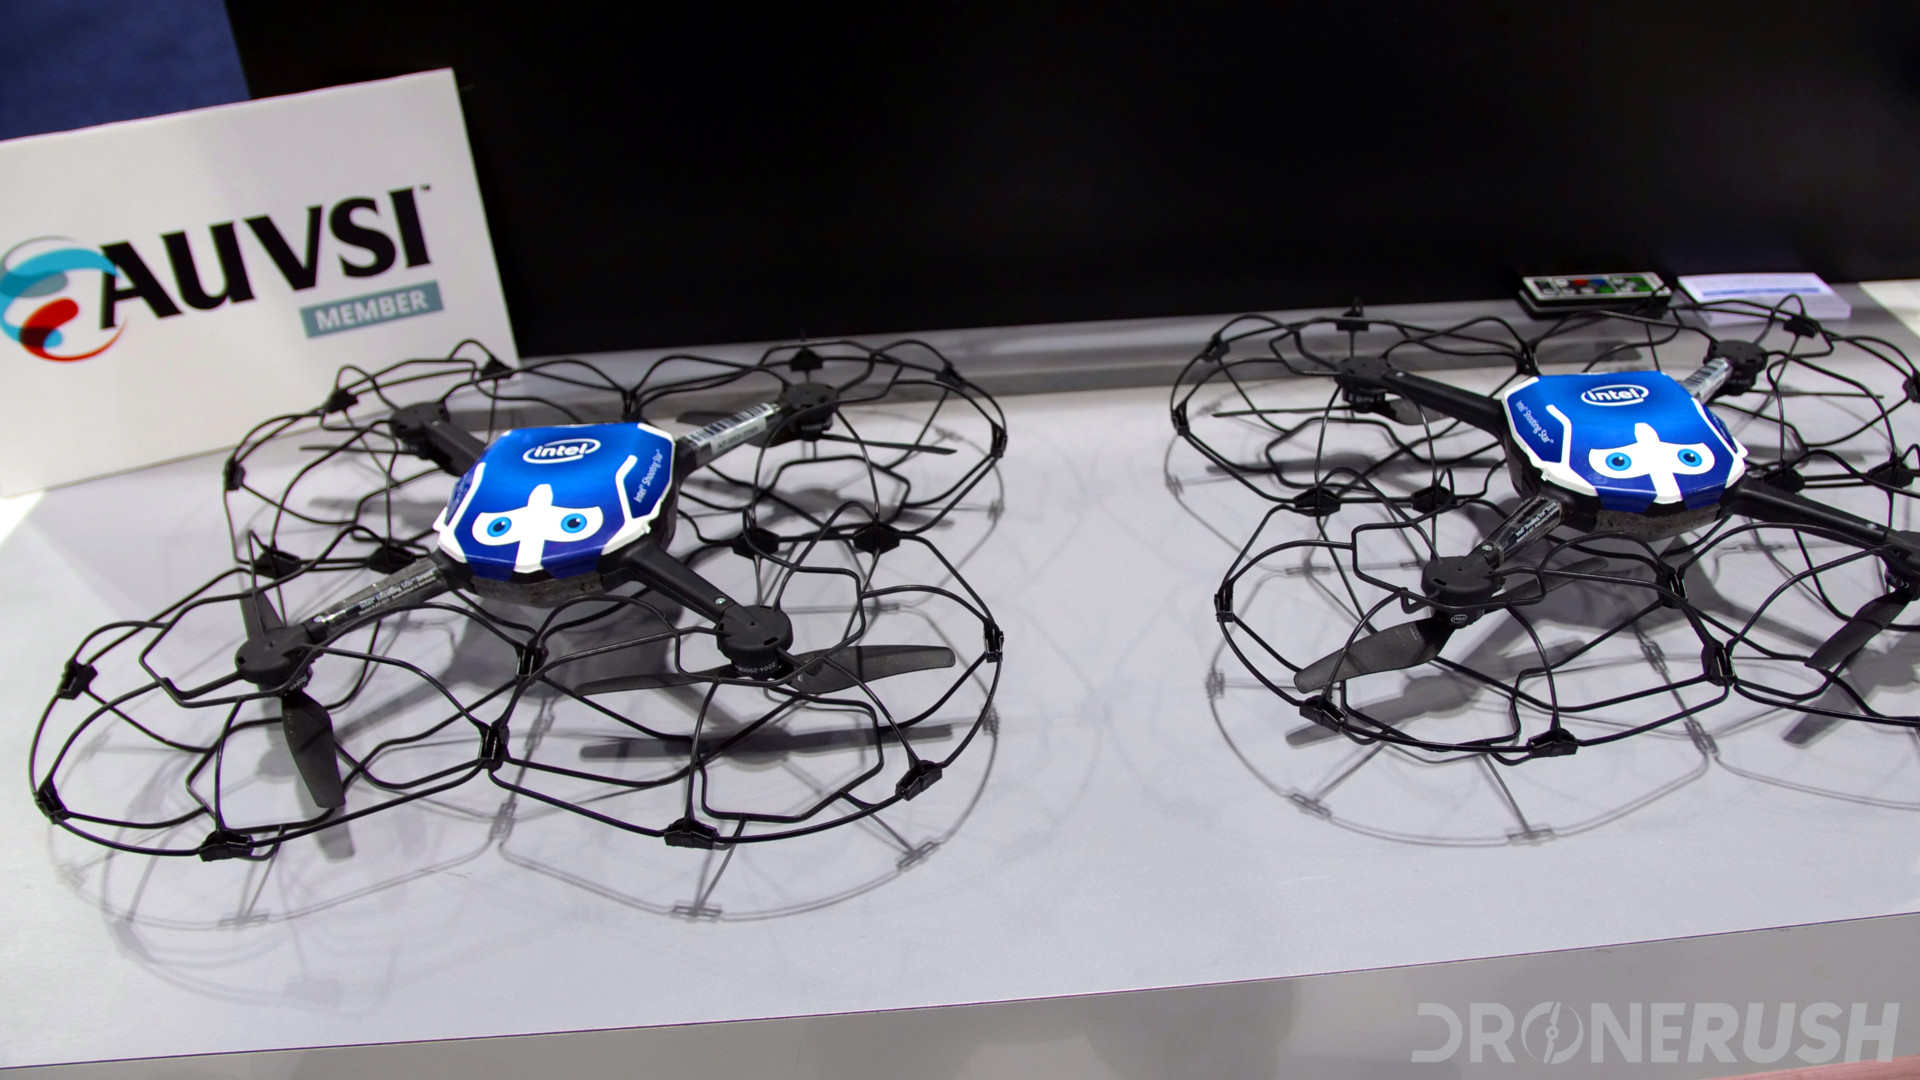 Intel Shooting Star drones AUVSI Xponential